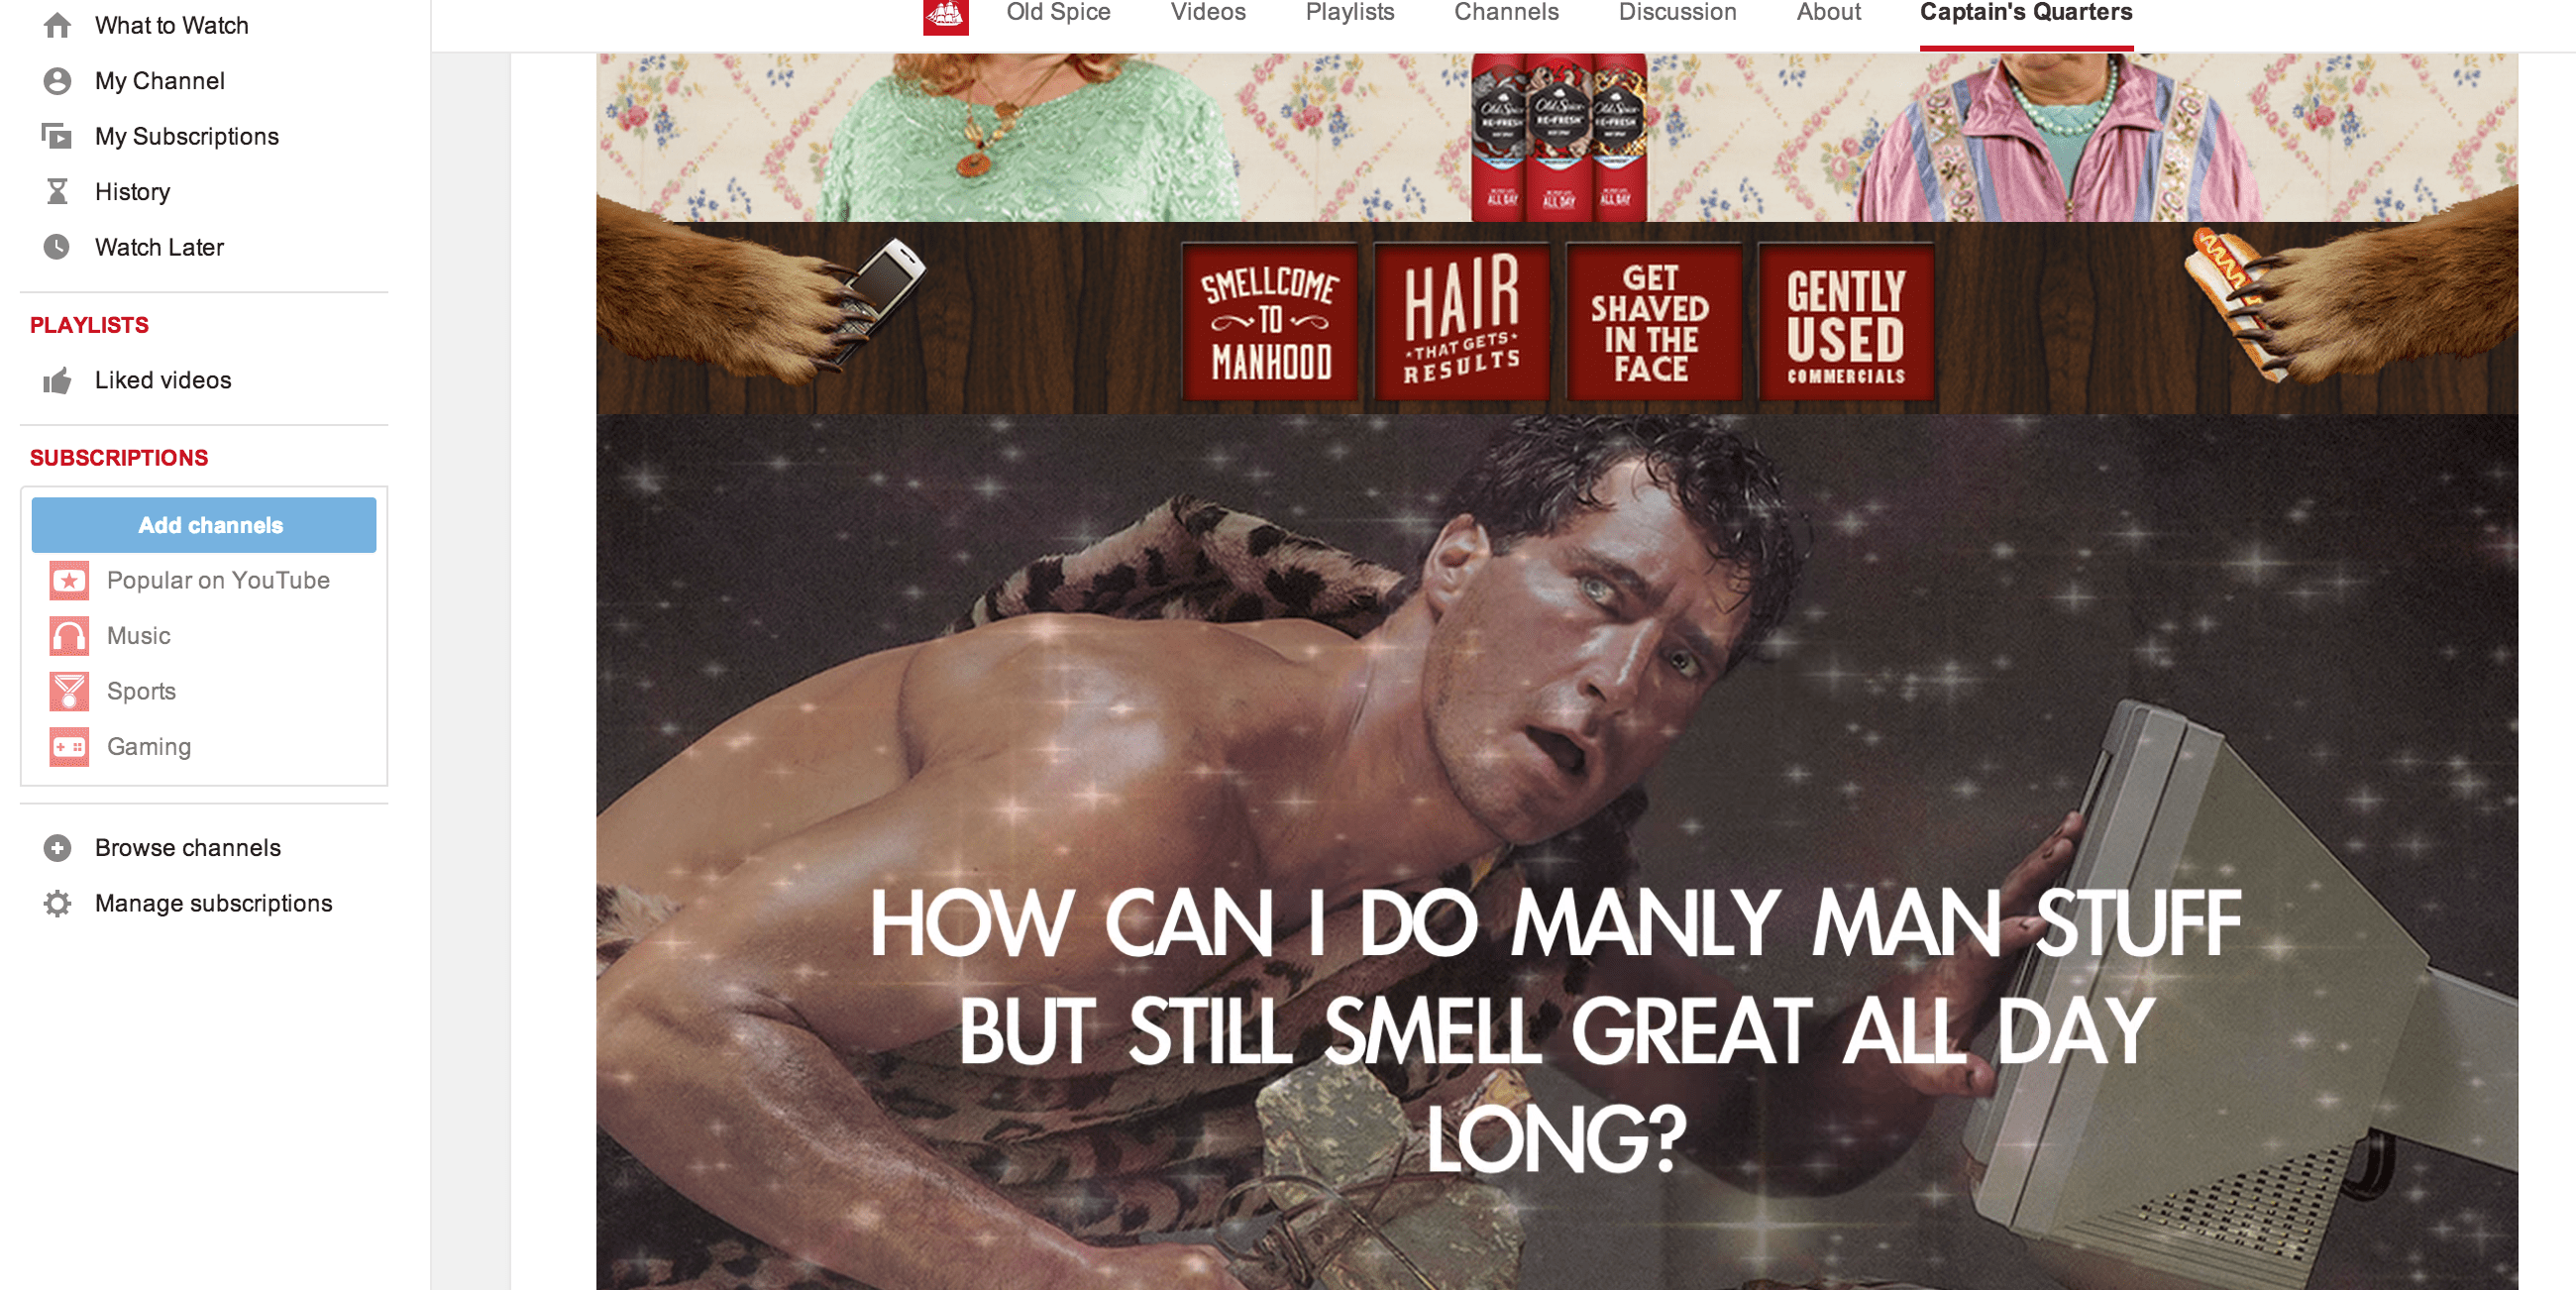 Old Spice Business Marketing Videos